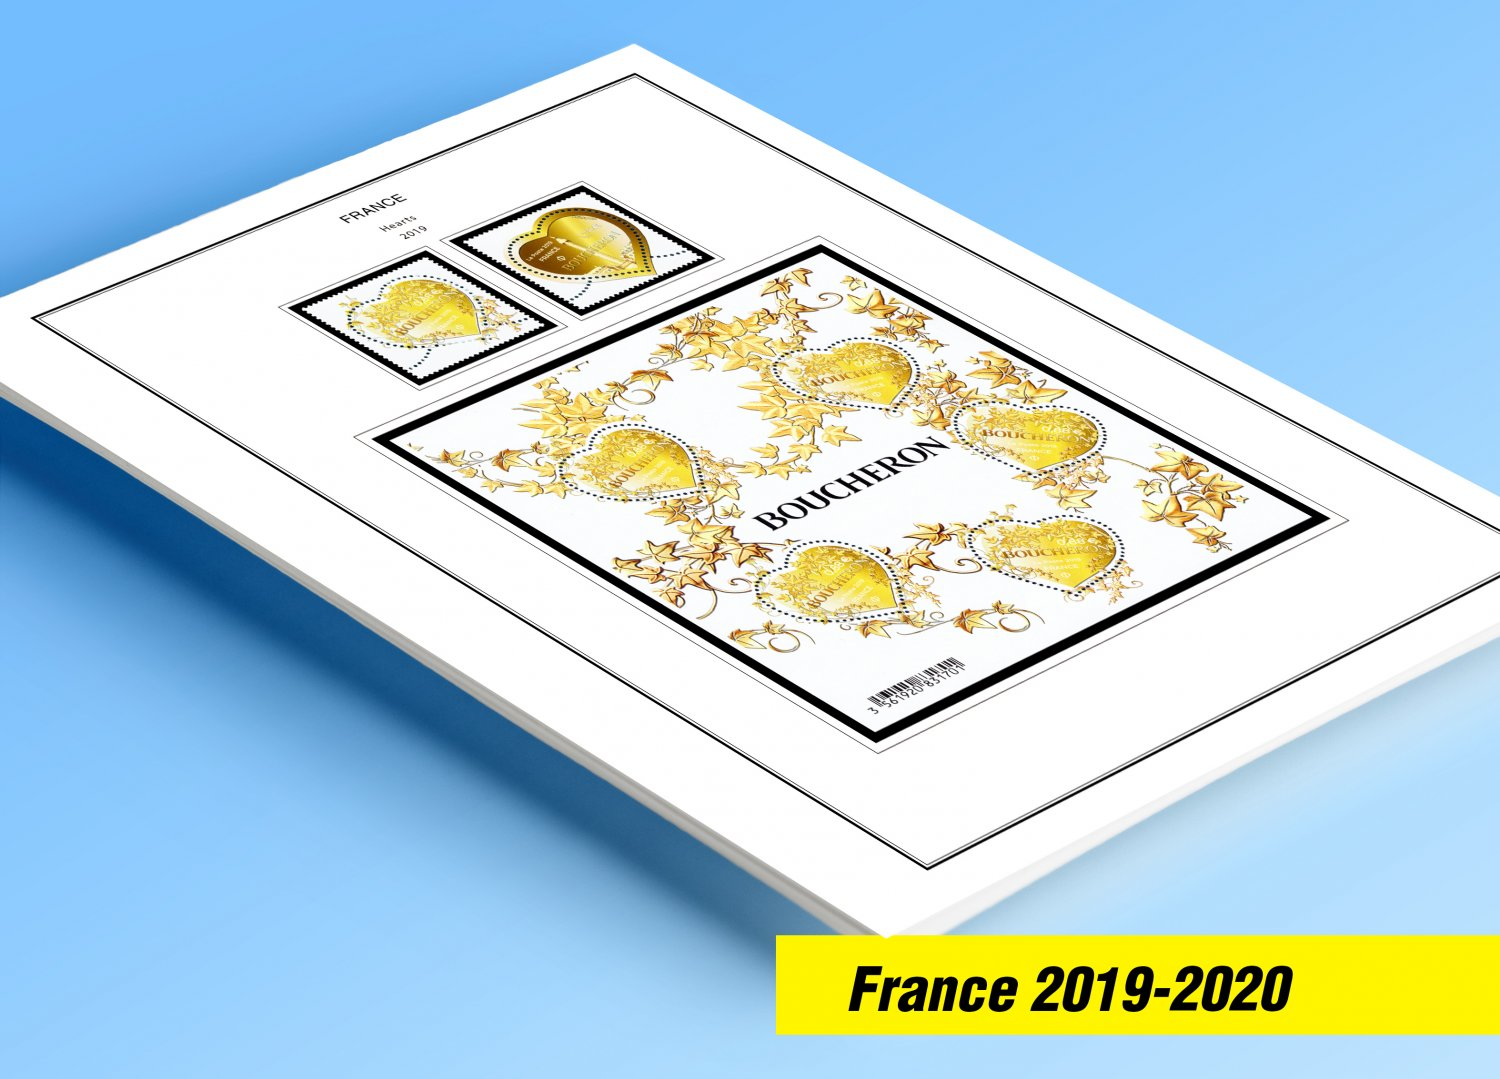 COLOR PRINTED FRANCE 2019-2020 STAMP ALBUM PAGES (63 illustrated pages)